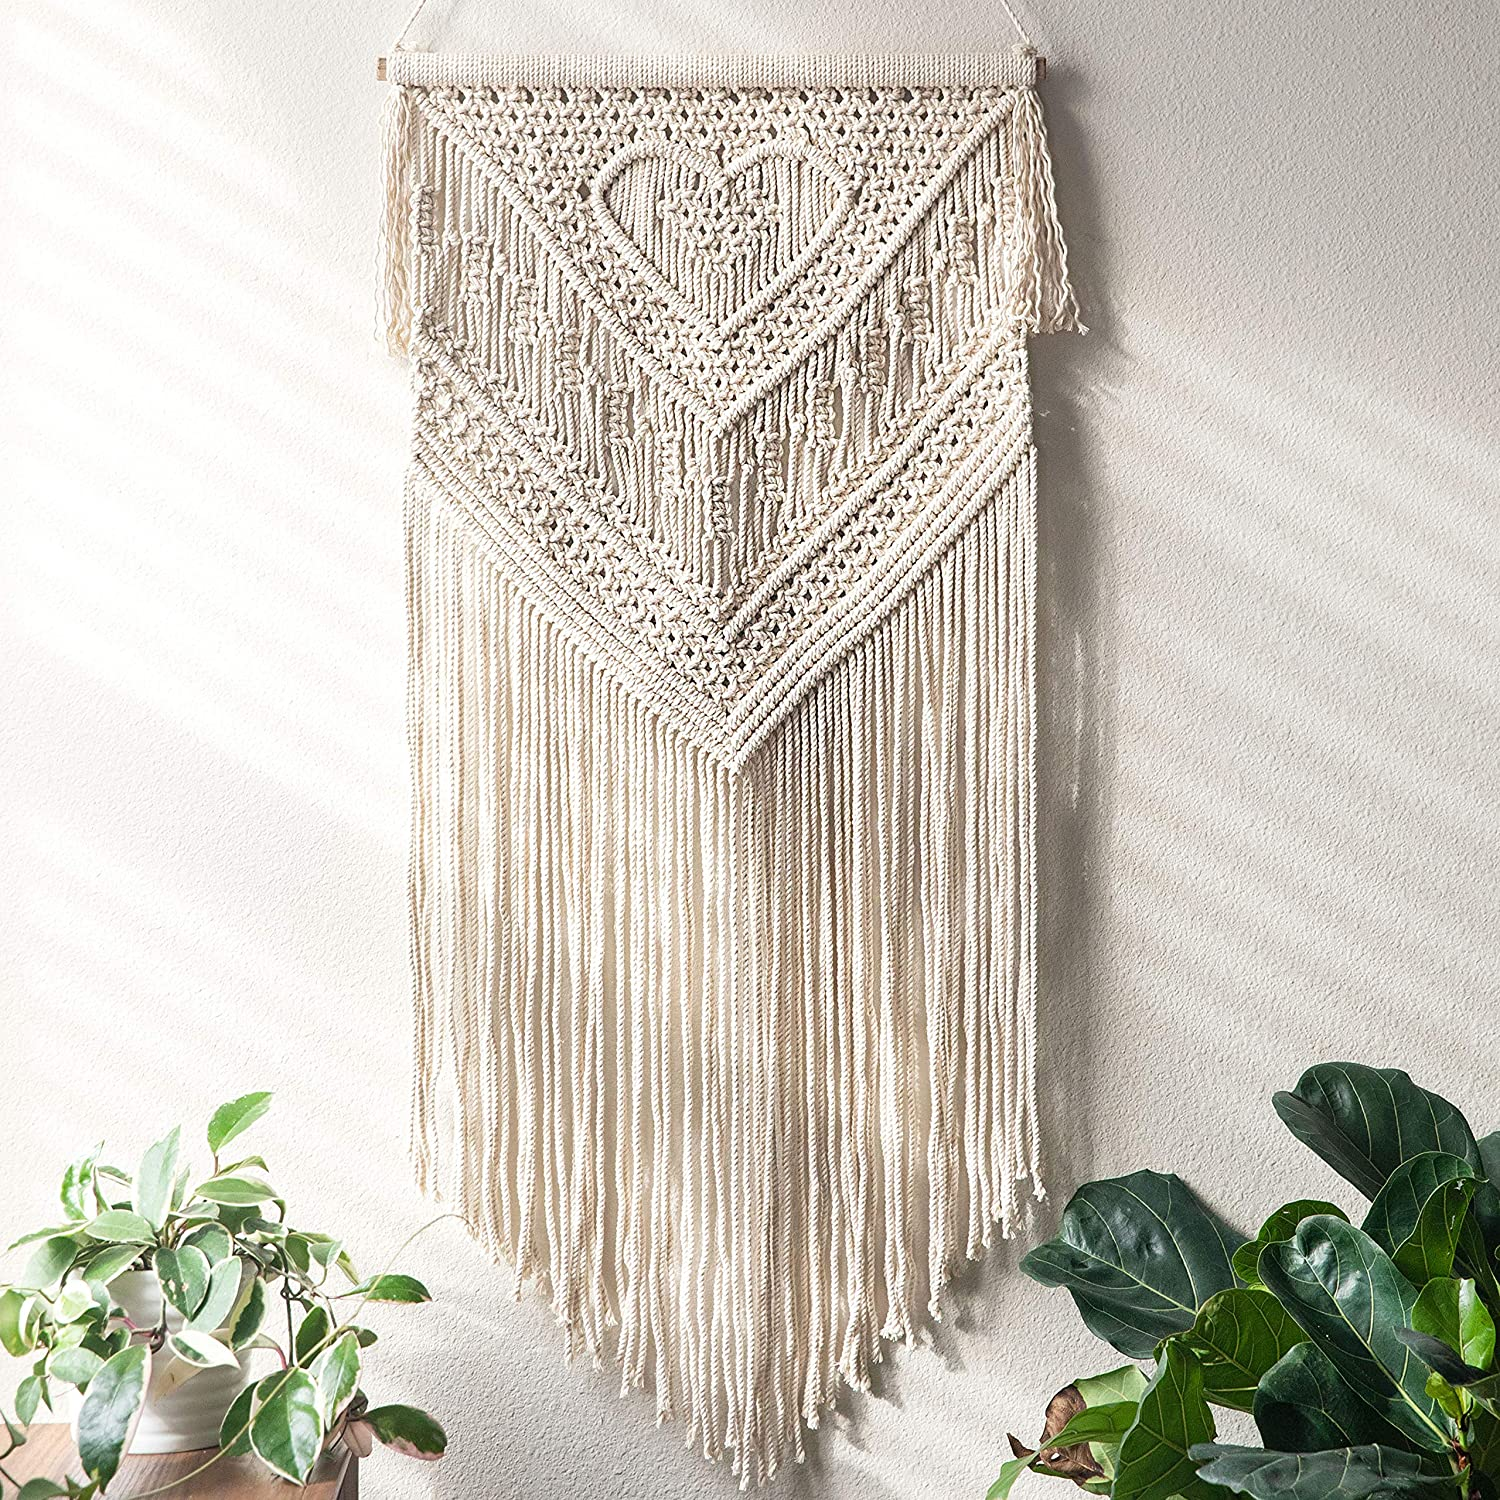 """Macrame Wall Hanging Home Decor Art Size 16"""" X 35"""" - Woven Bohemian Boho Chic Beige Wall Decoration Tapestry for Nursery, House, Dorm Room, Apartment, Party, Wedding Decoration"""